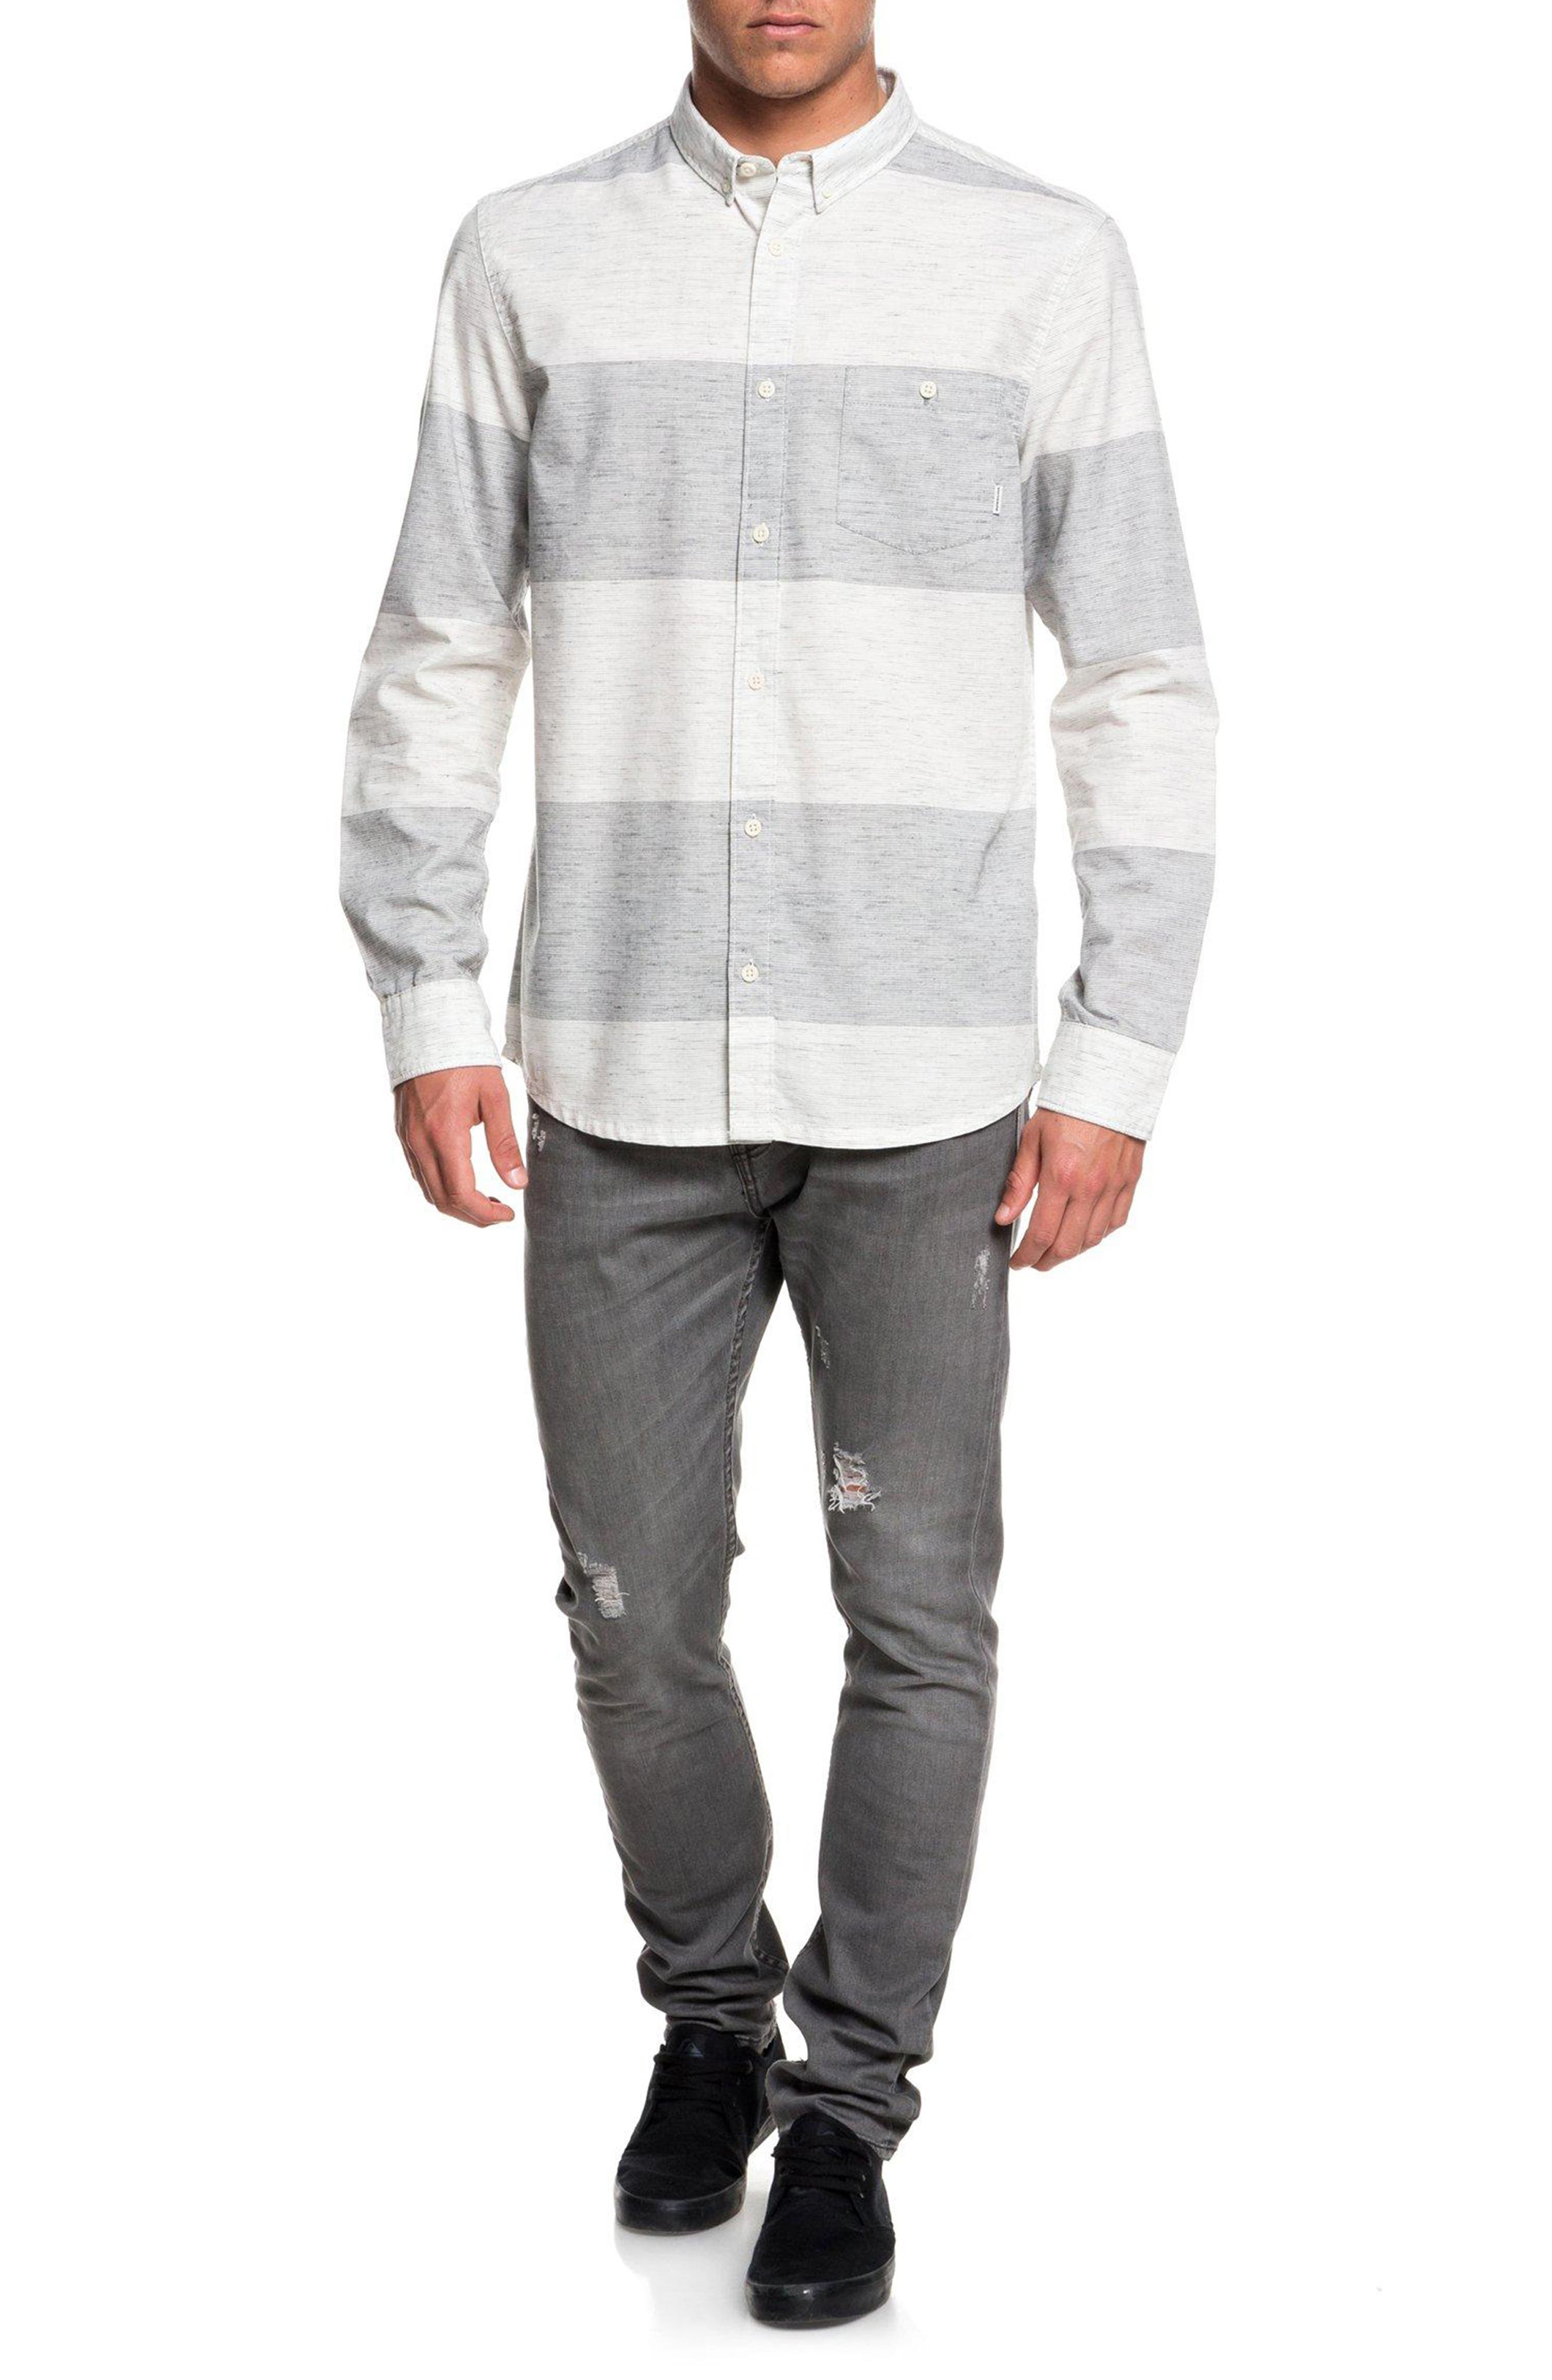 Minoo Valley Striped Shirt,                             Alternate thumbnail 4, color,                             IRON GATE MARBLE NEPPY